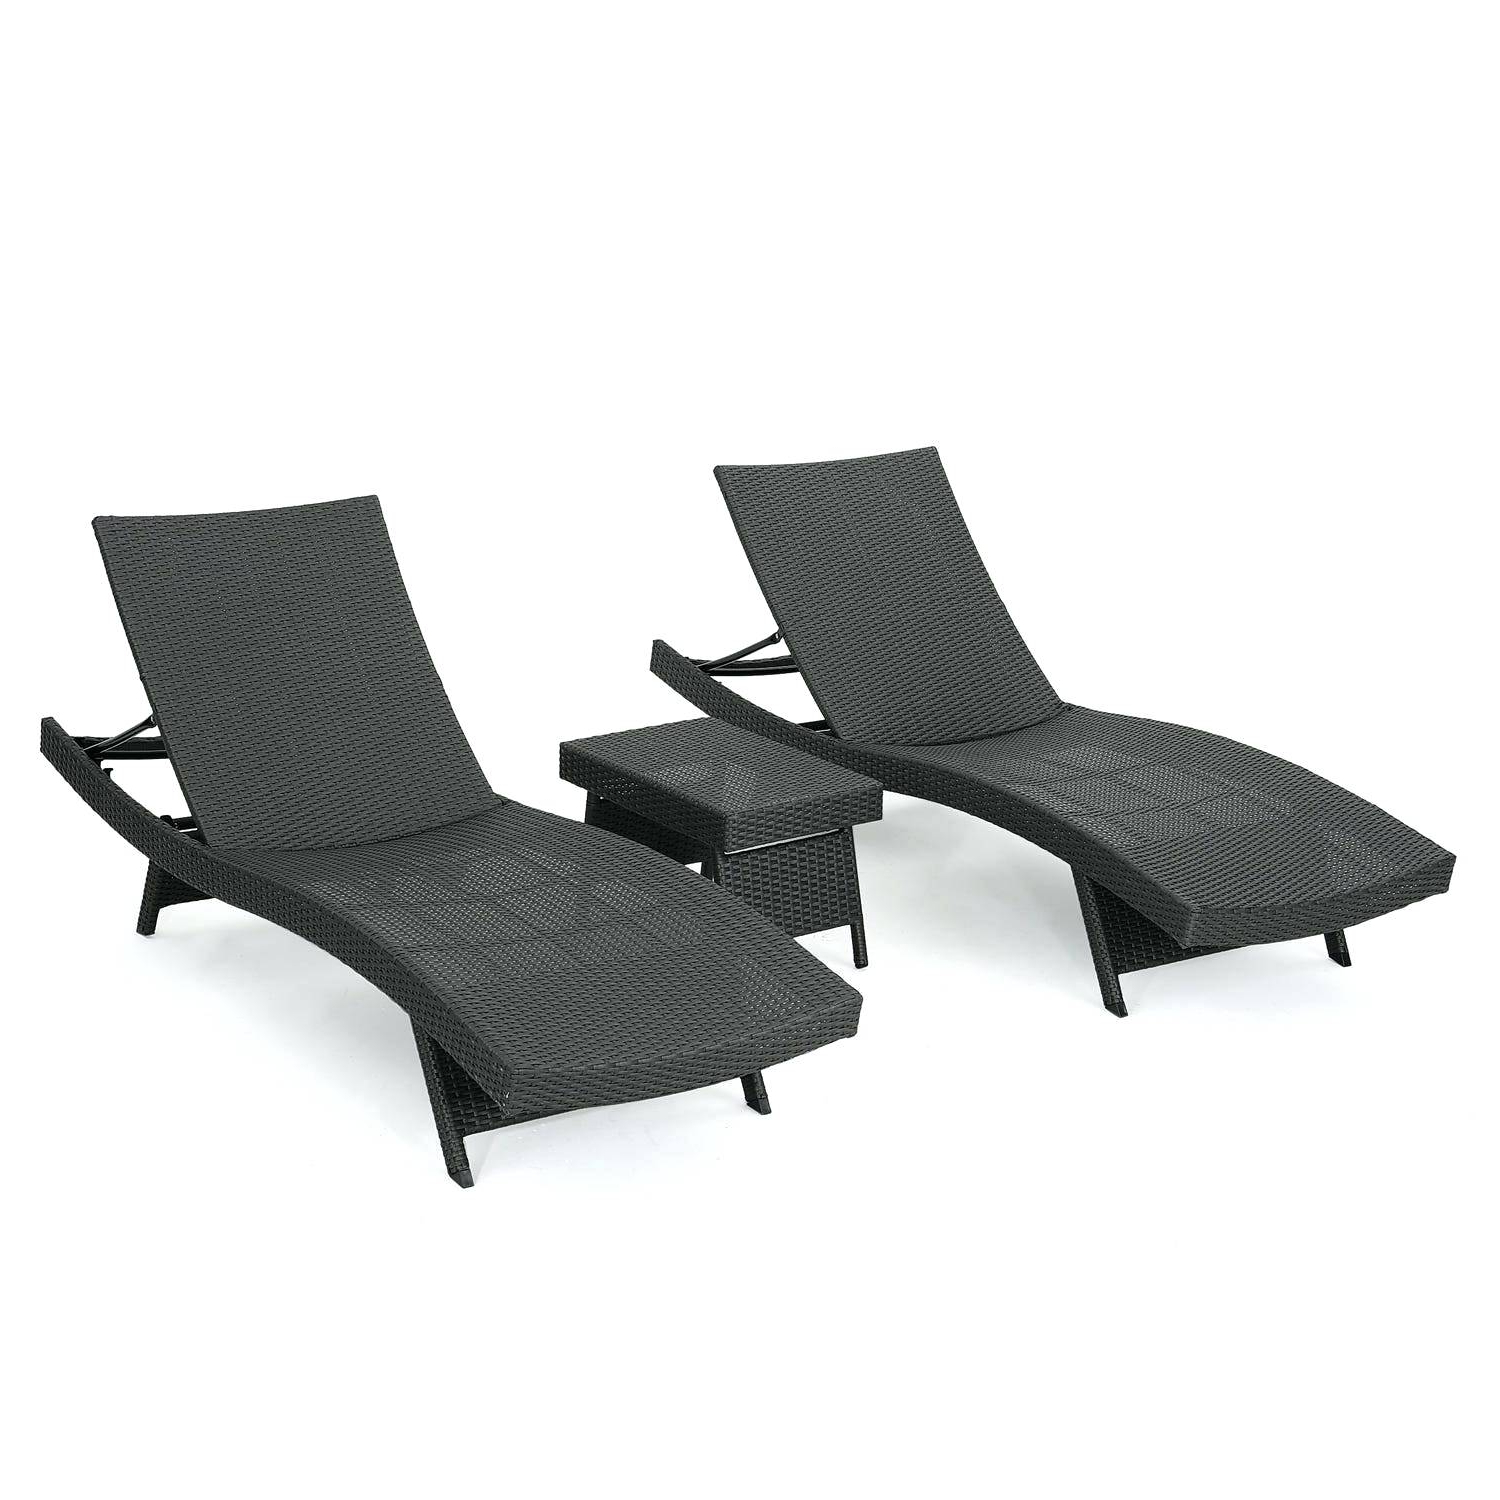 Biscayne White Chaise Lounge Chairs Pertaining To Favorite All Weather Wicker Chaise Crosley Biscayne Lounge With White (View 17 of 25)